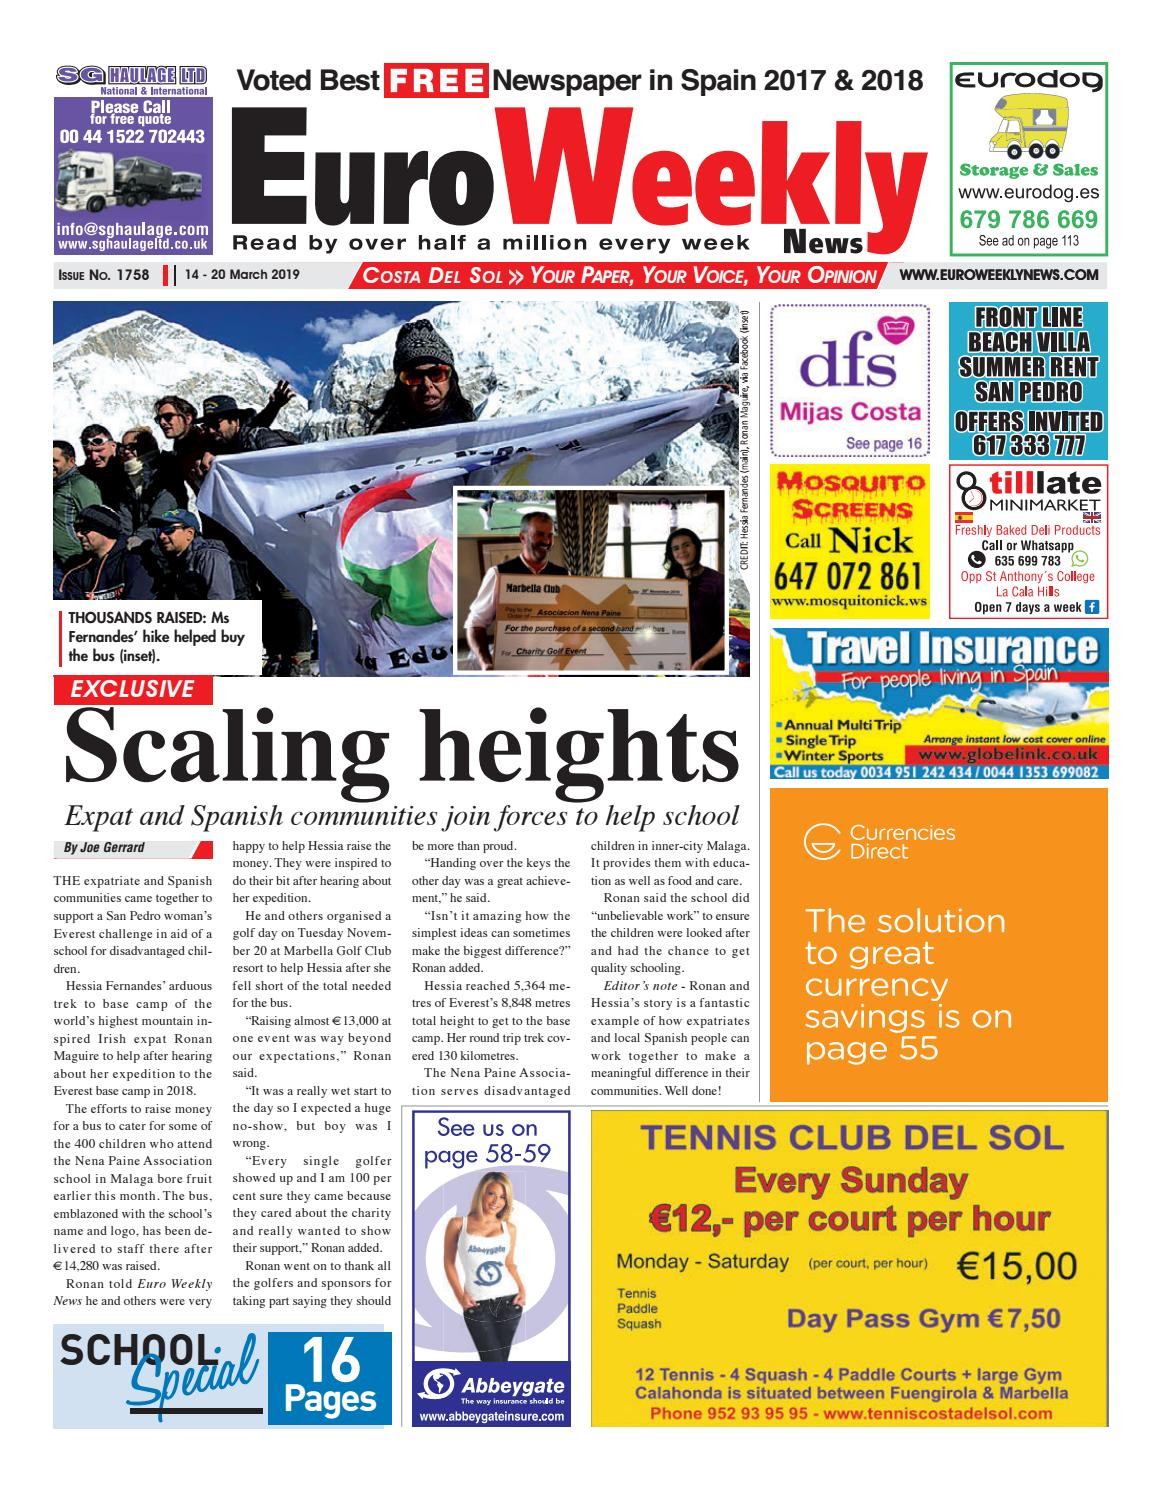 1799cec2de Euro Weekly News - Costa del Sol 14 - 20 March 2019 Issue 1758 by Euro  Weekly News Media S.A. - issuu